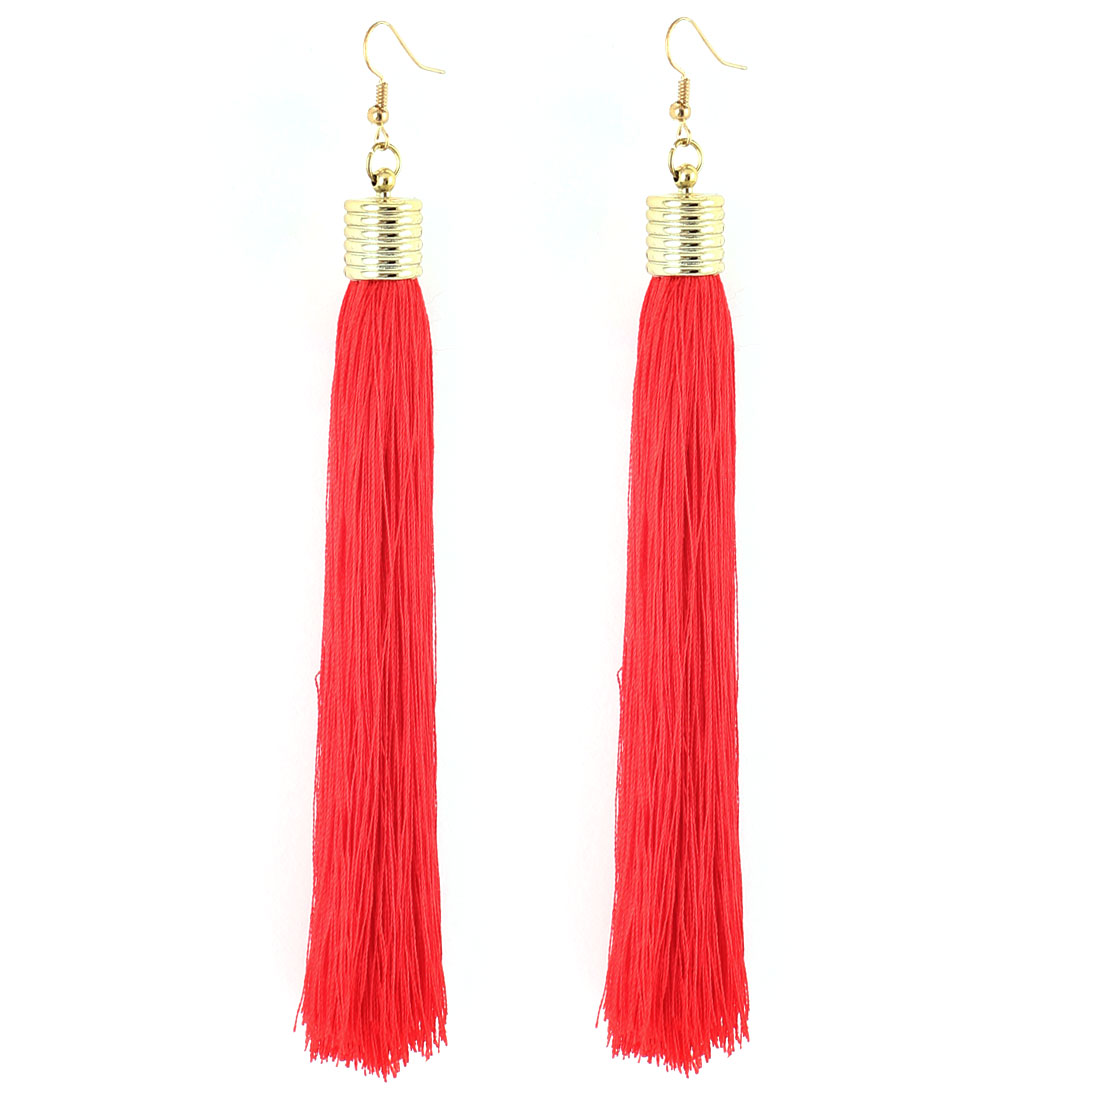 Pair Red Tassel Dangle Pendant Gold Tone Metal Ear Hooks Drops Earrings Eardrops for Lady